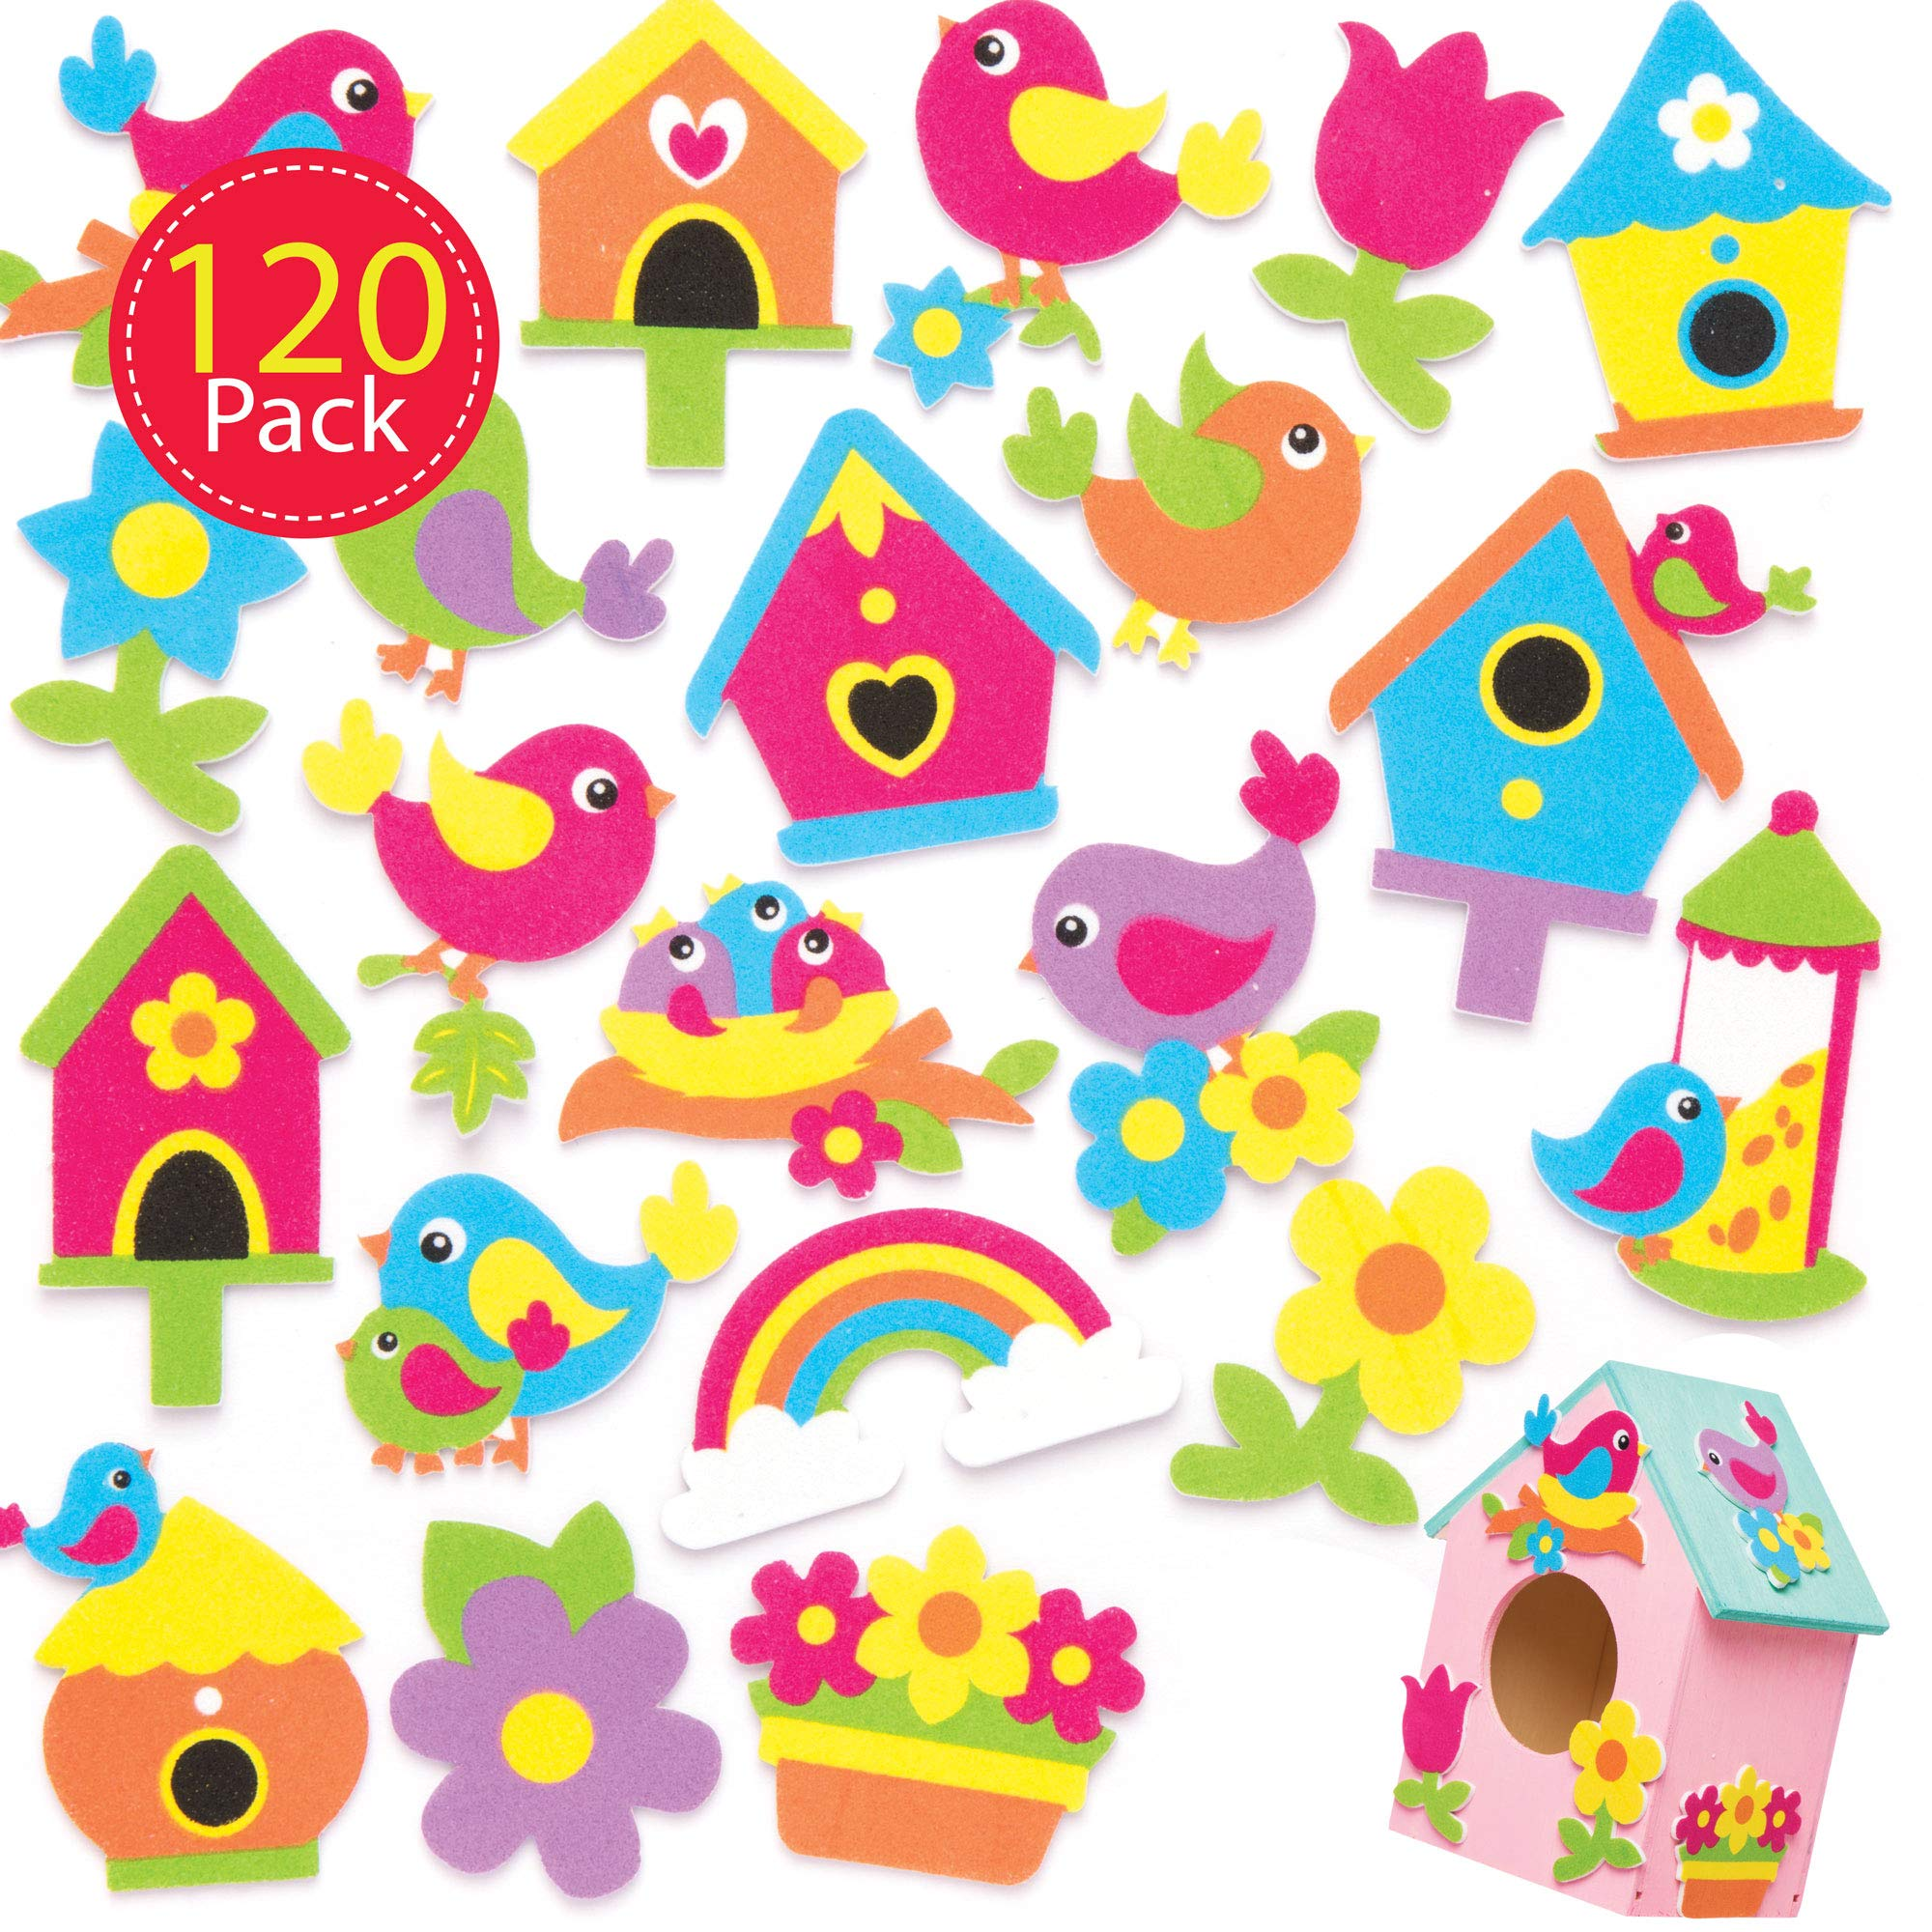 Baker Ross Self-Adhesive Foam Bird Decoration Stickers | Kids Spring Themed Fun Arts & Crafts Project | No Glue or Scissors Needed | Pack of 120 Colorful Nature Designs